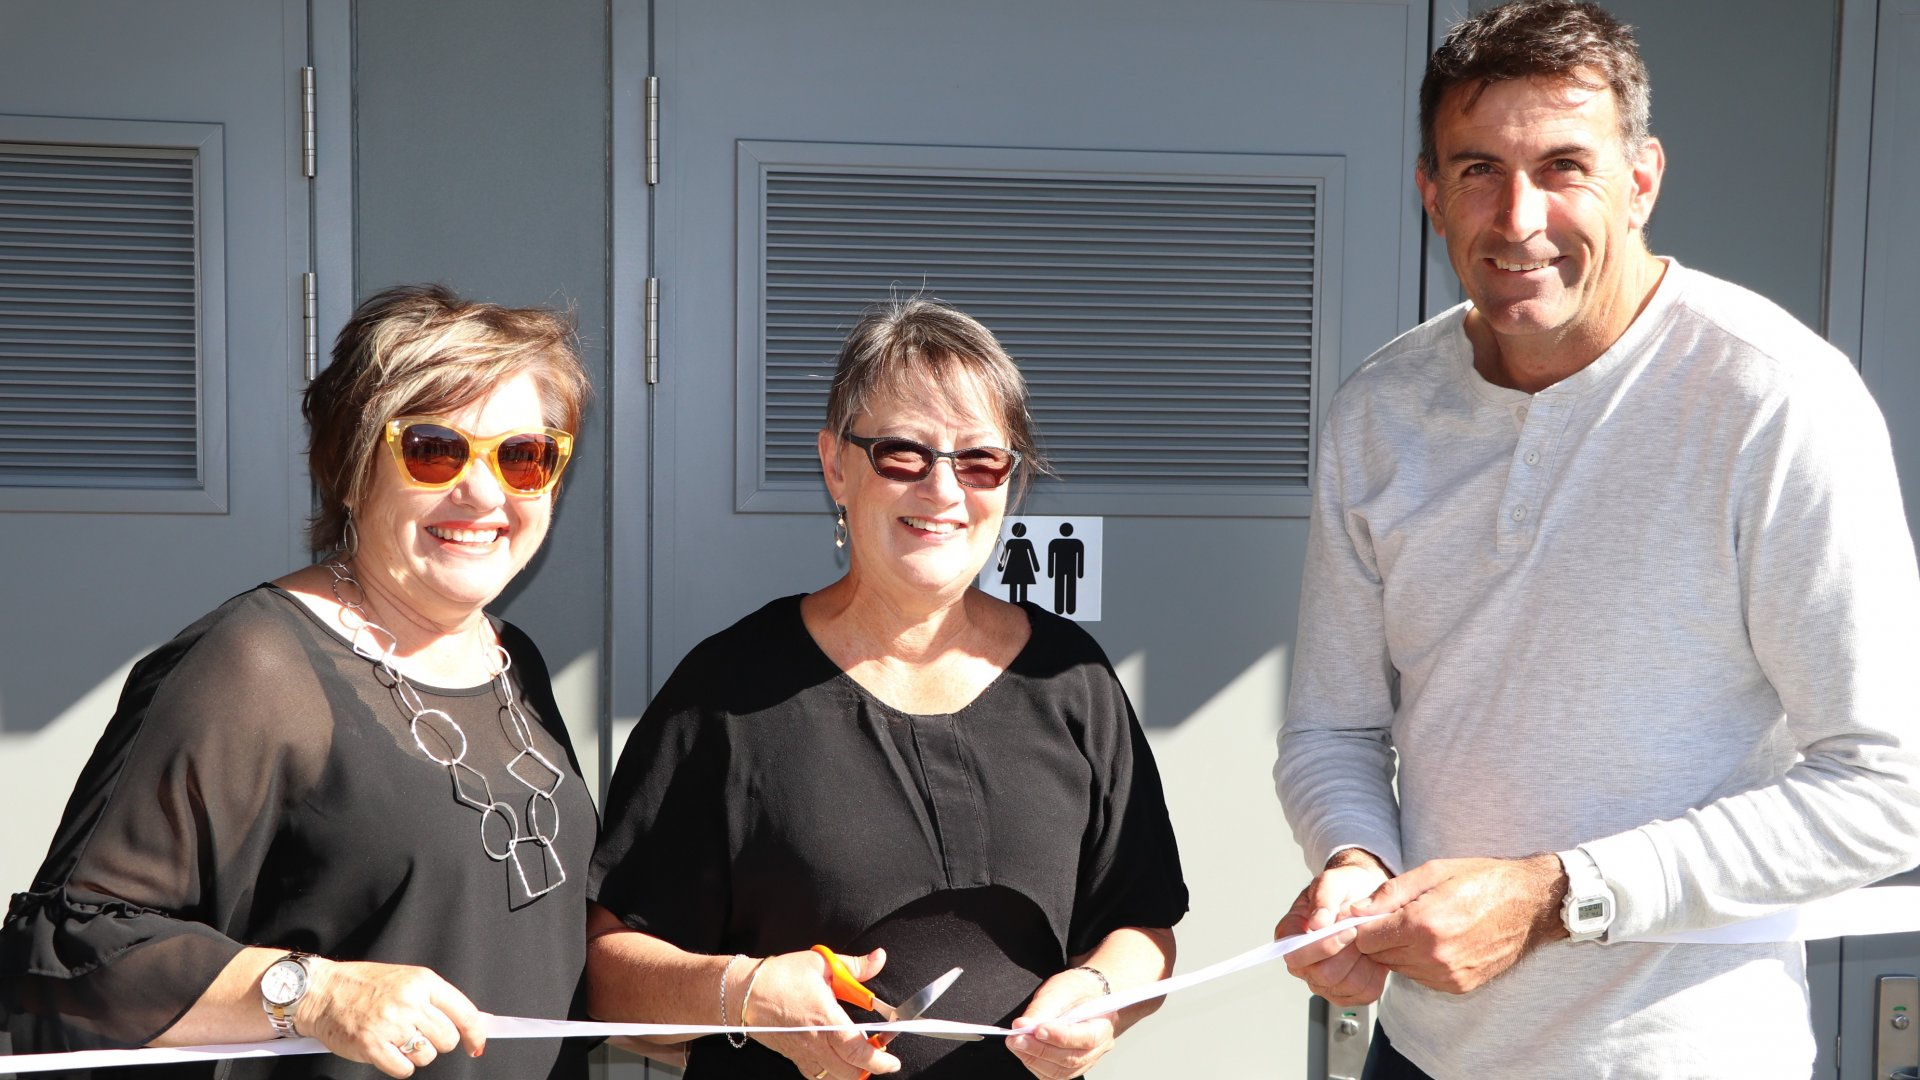 Photo: From left, Councillors Yvonne Bowater, Gaile Noonan and Tim Skinner at the opening of the Millers Acre toilets, made possible with the help of government funding.